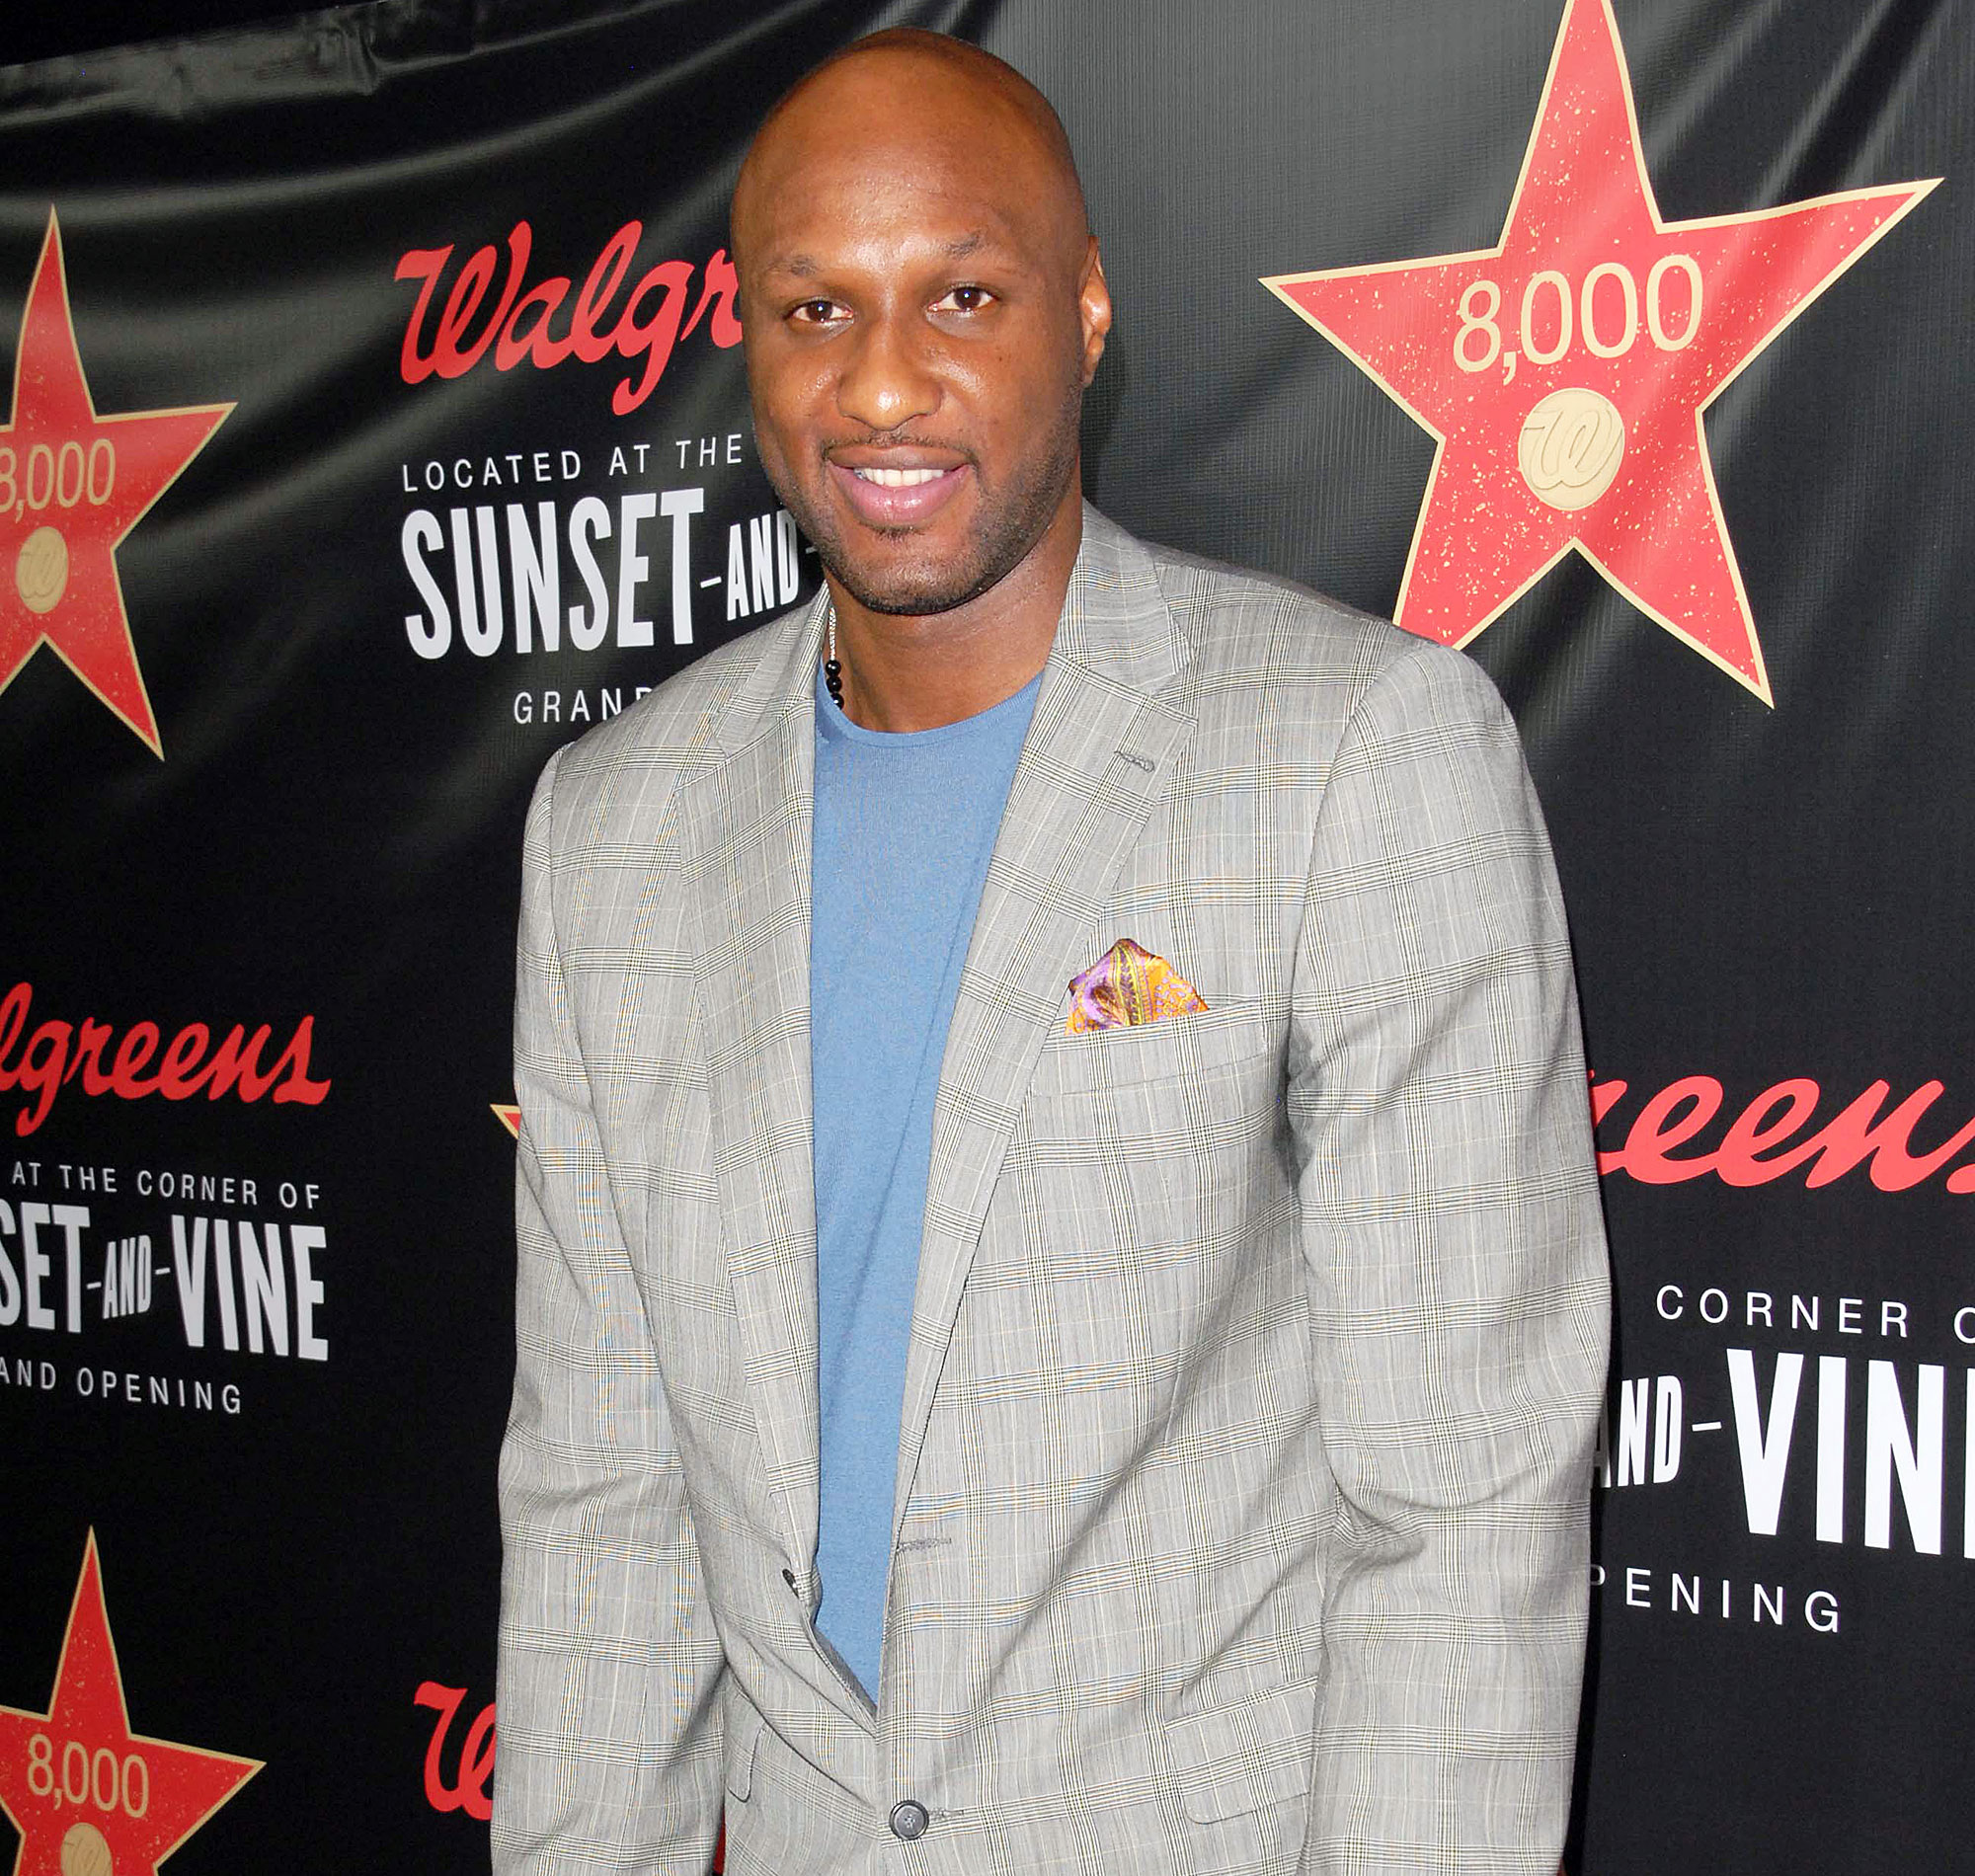 Lamar Odom in 2012 Lamar Odom Is Surprised That the Kardashian Jenners Are Walking Away From Keeping Up With The Kardashians After 20 Seasons